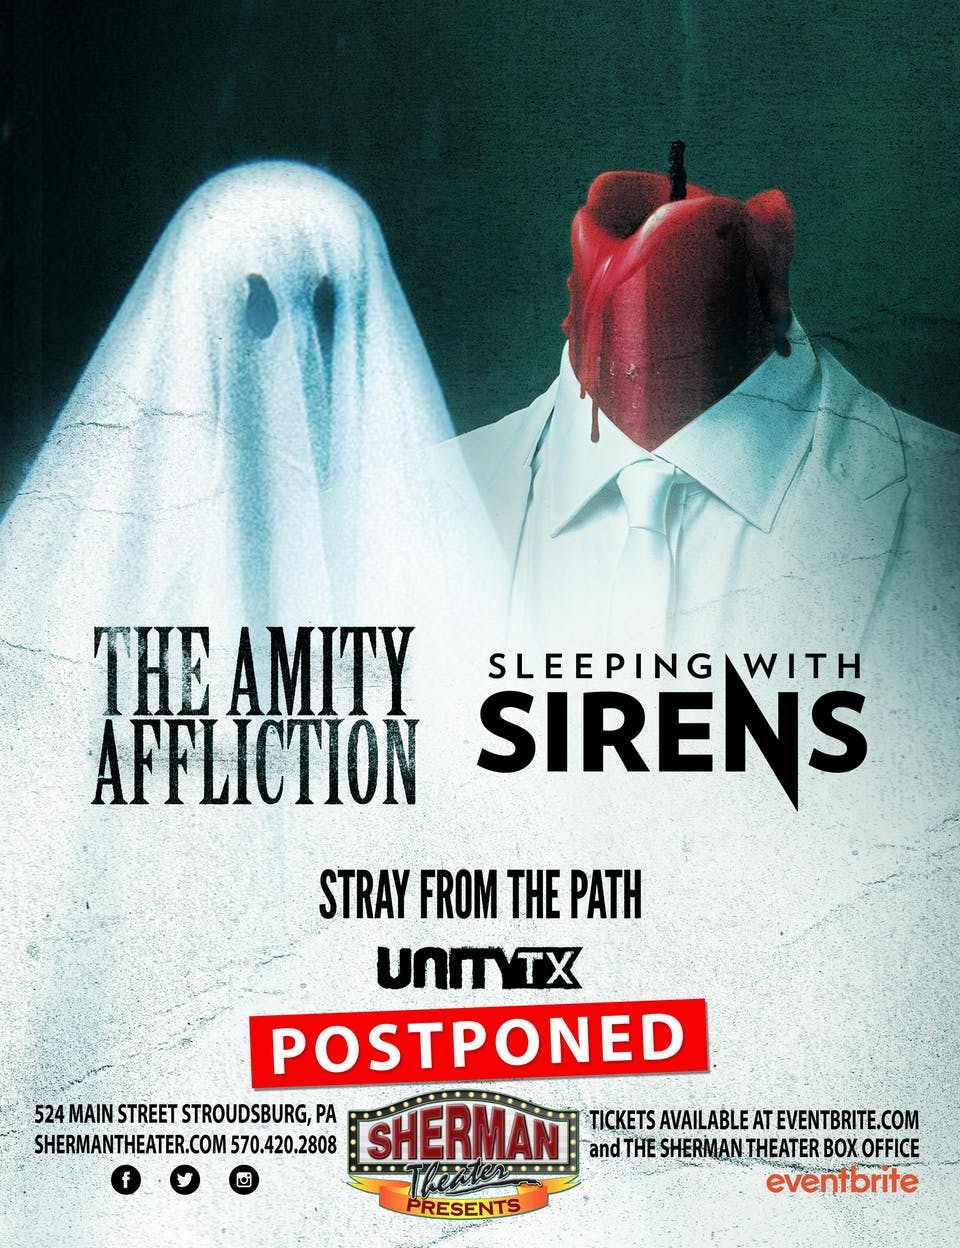 POSTPONED: The Amity Affliction and Sleeping With Sirens